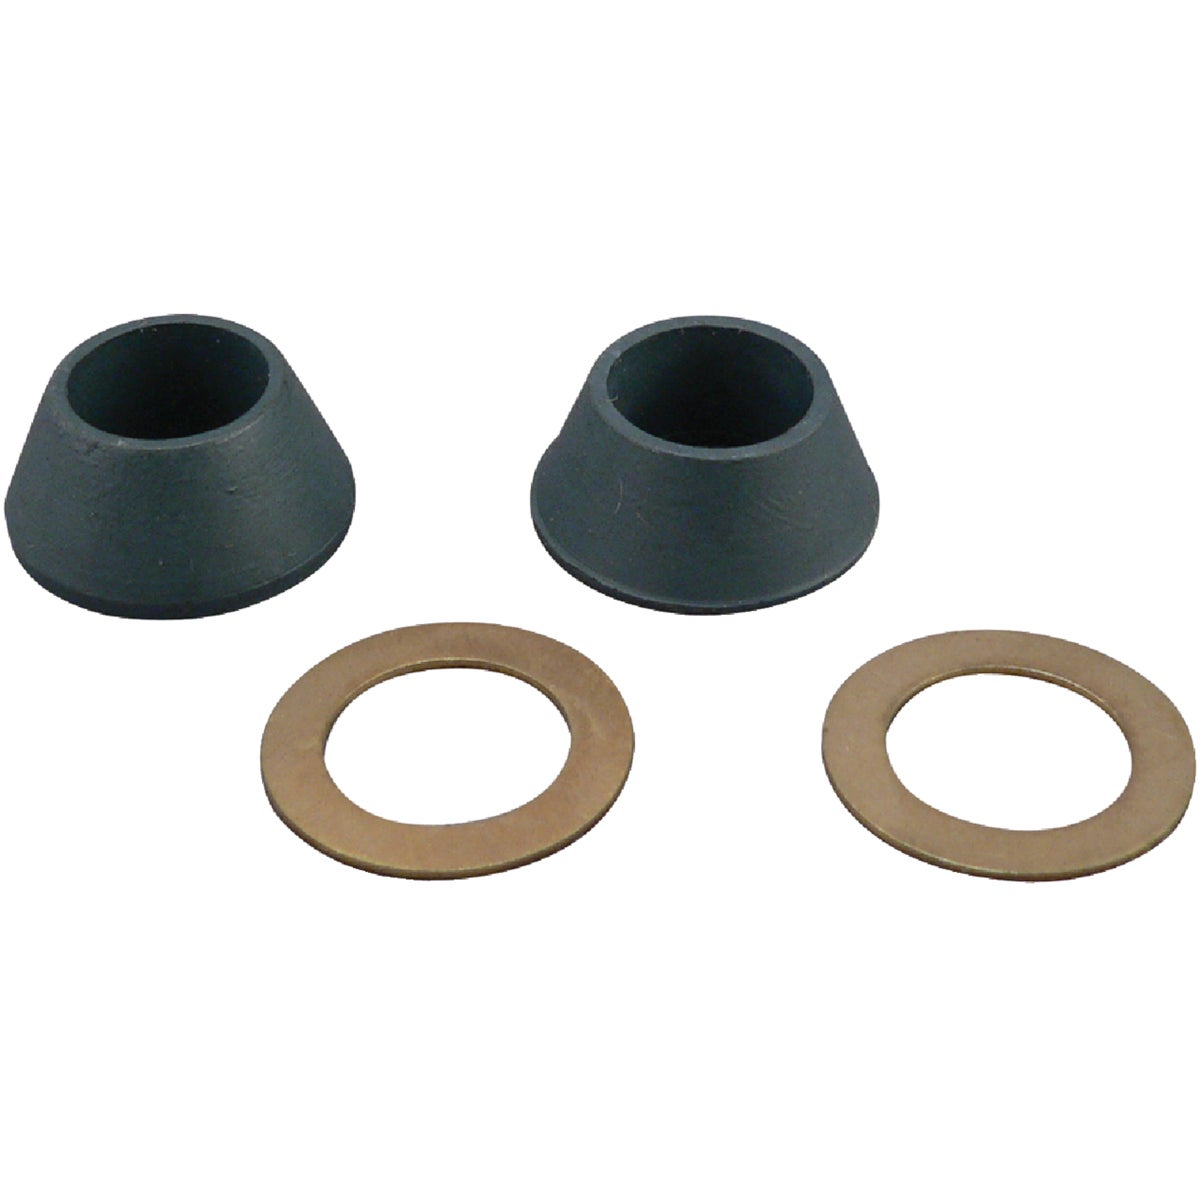 2PK CONE WASHER & RING - 420912 by Plumb Pak/keeney Mfg